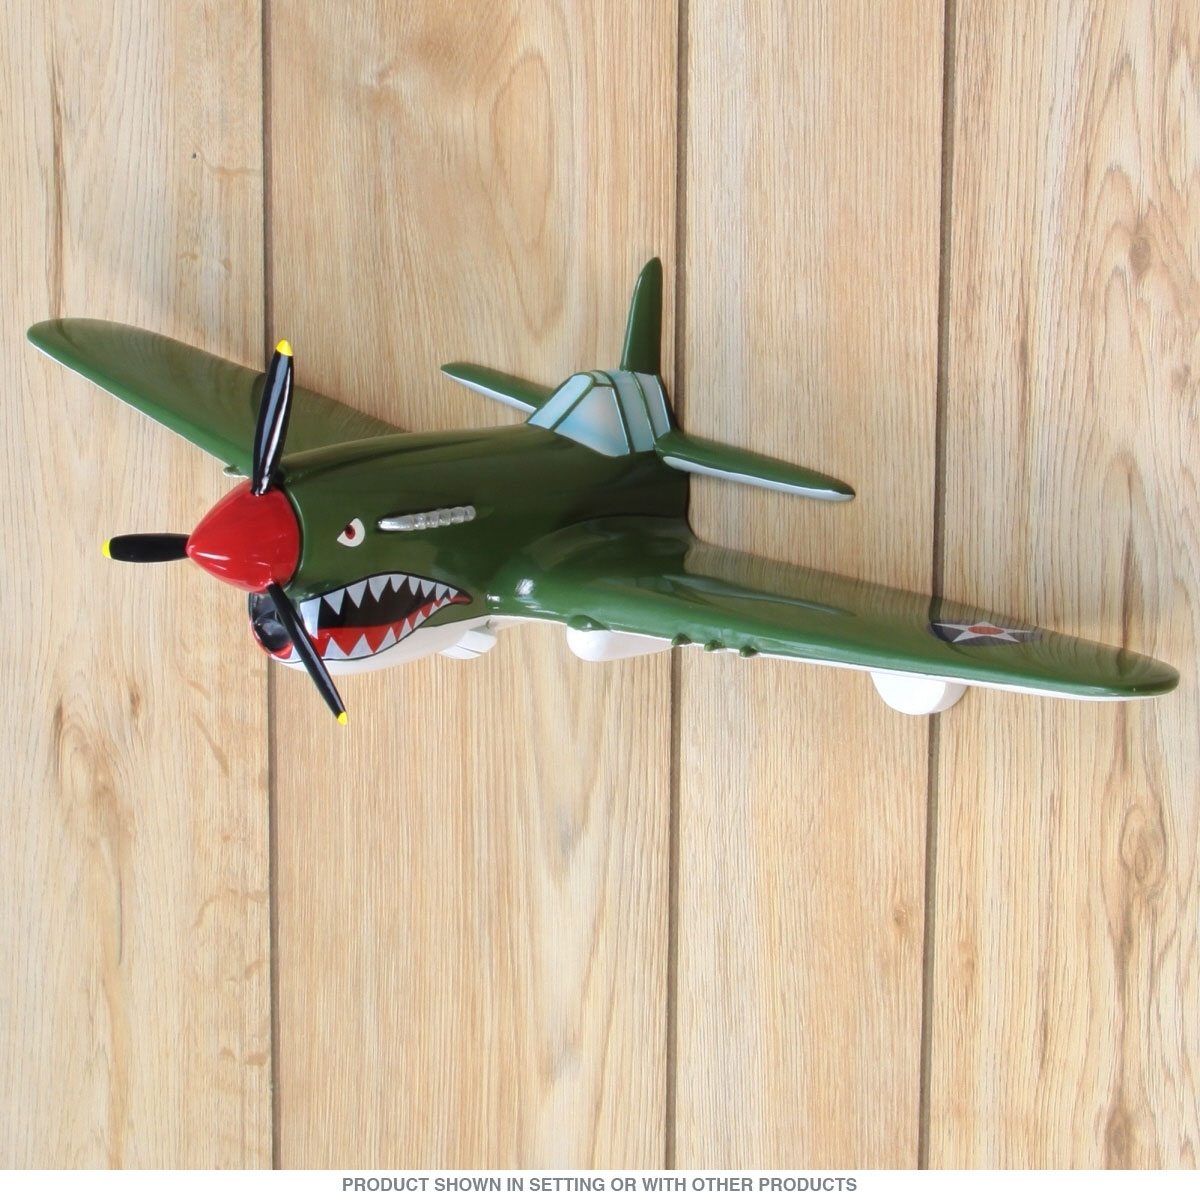 Wall Decor: Metal Airplane Wall Decor Metal Airplanes, Aviation Wall with regard to Airplane Wall Art (Image 20 of 20)